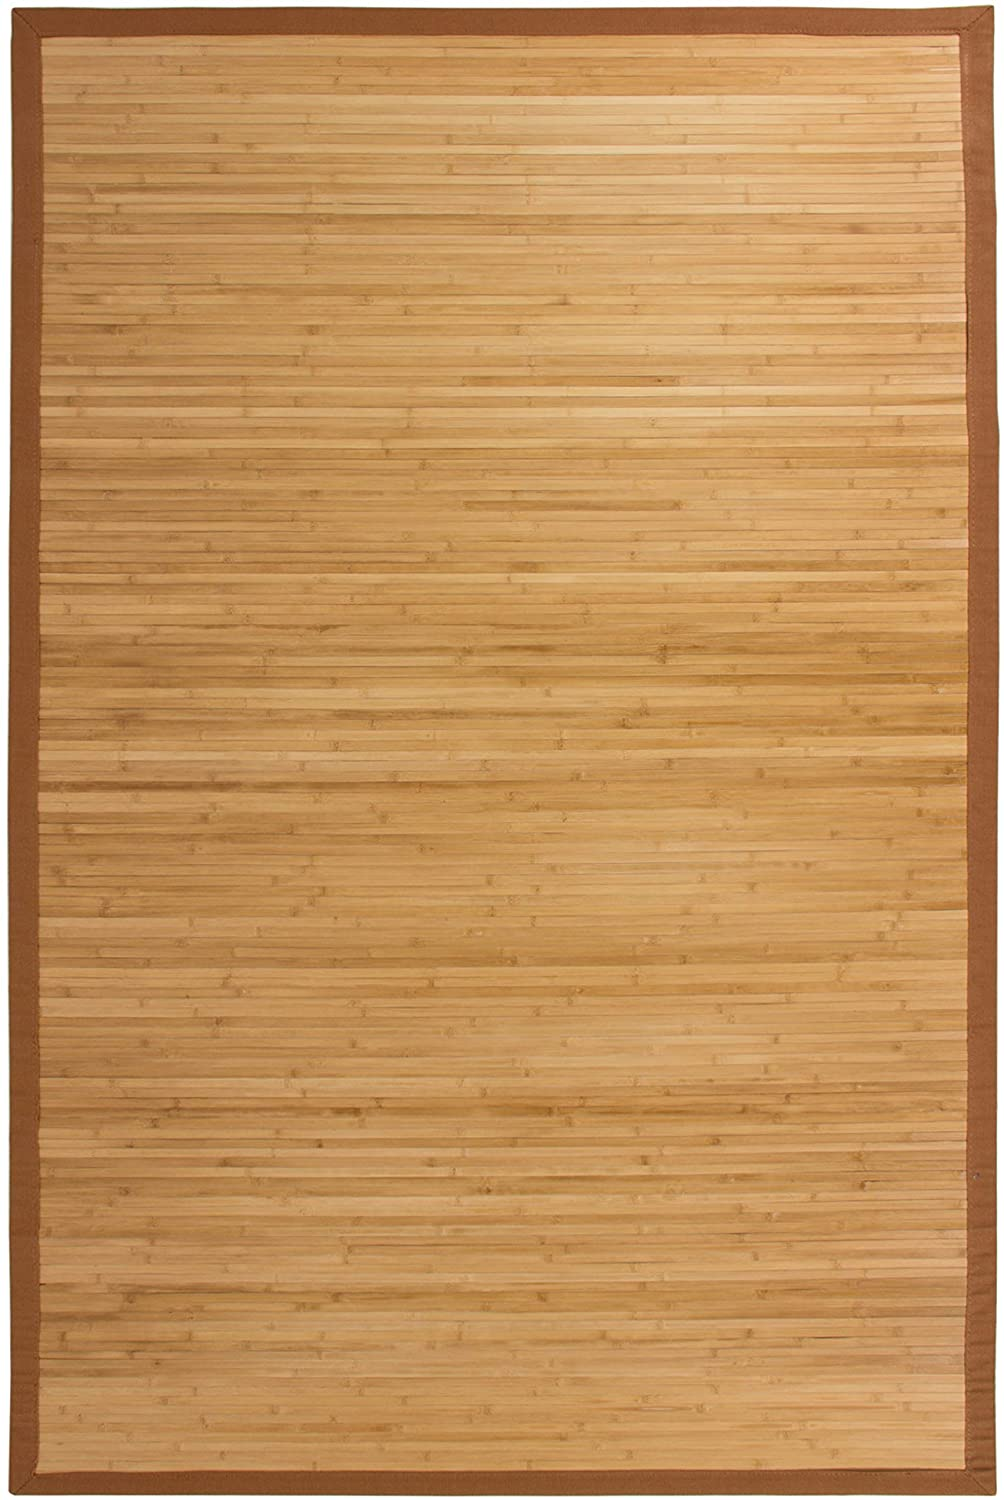 Bamboo Rug - 5 Best Rugs for Your Living Room Kaliuda Gallery Bali